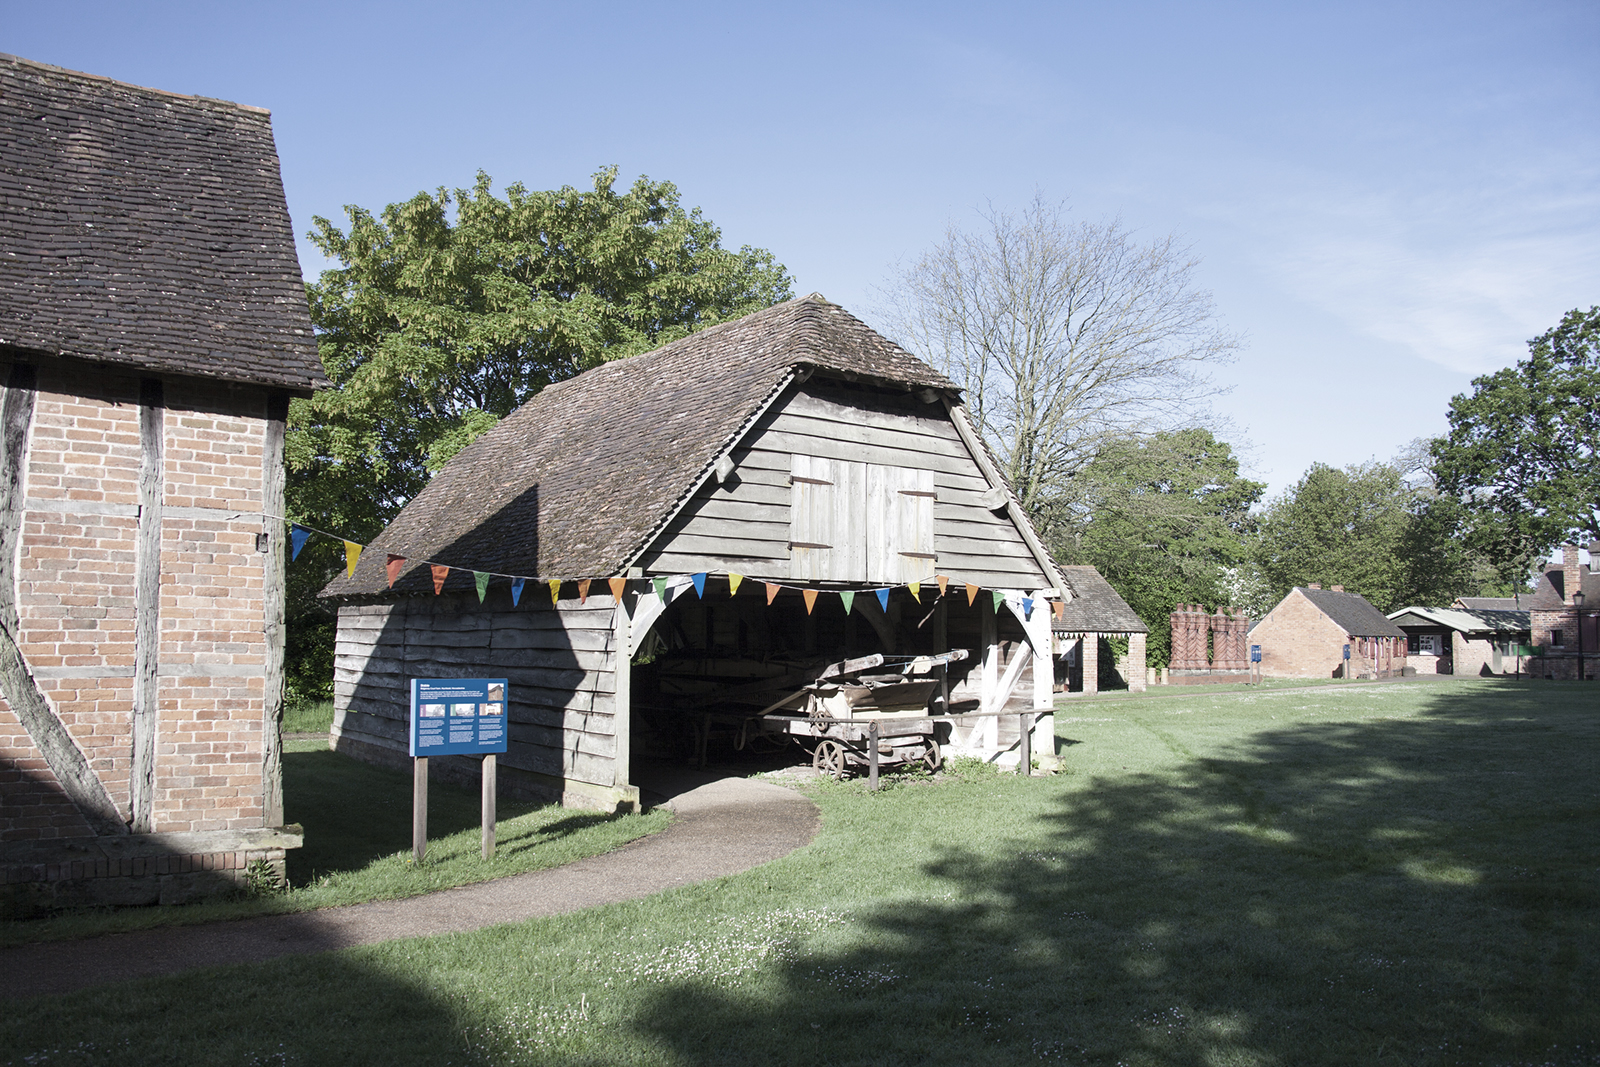 Mars under the stars at Avoncroft Museum!